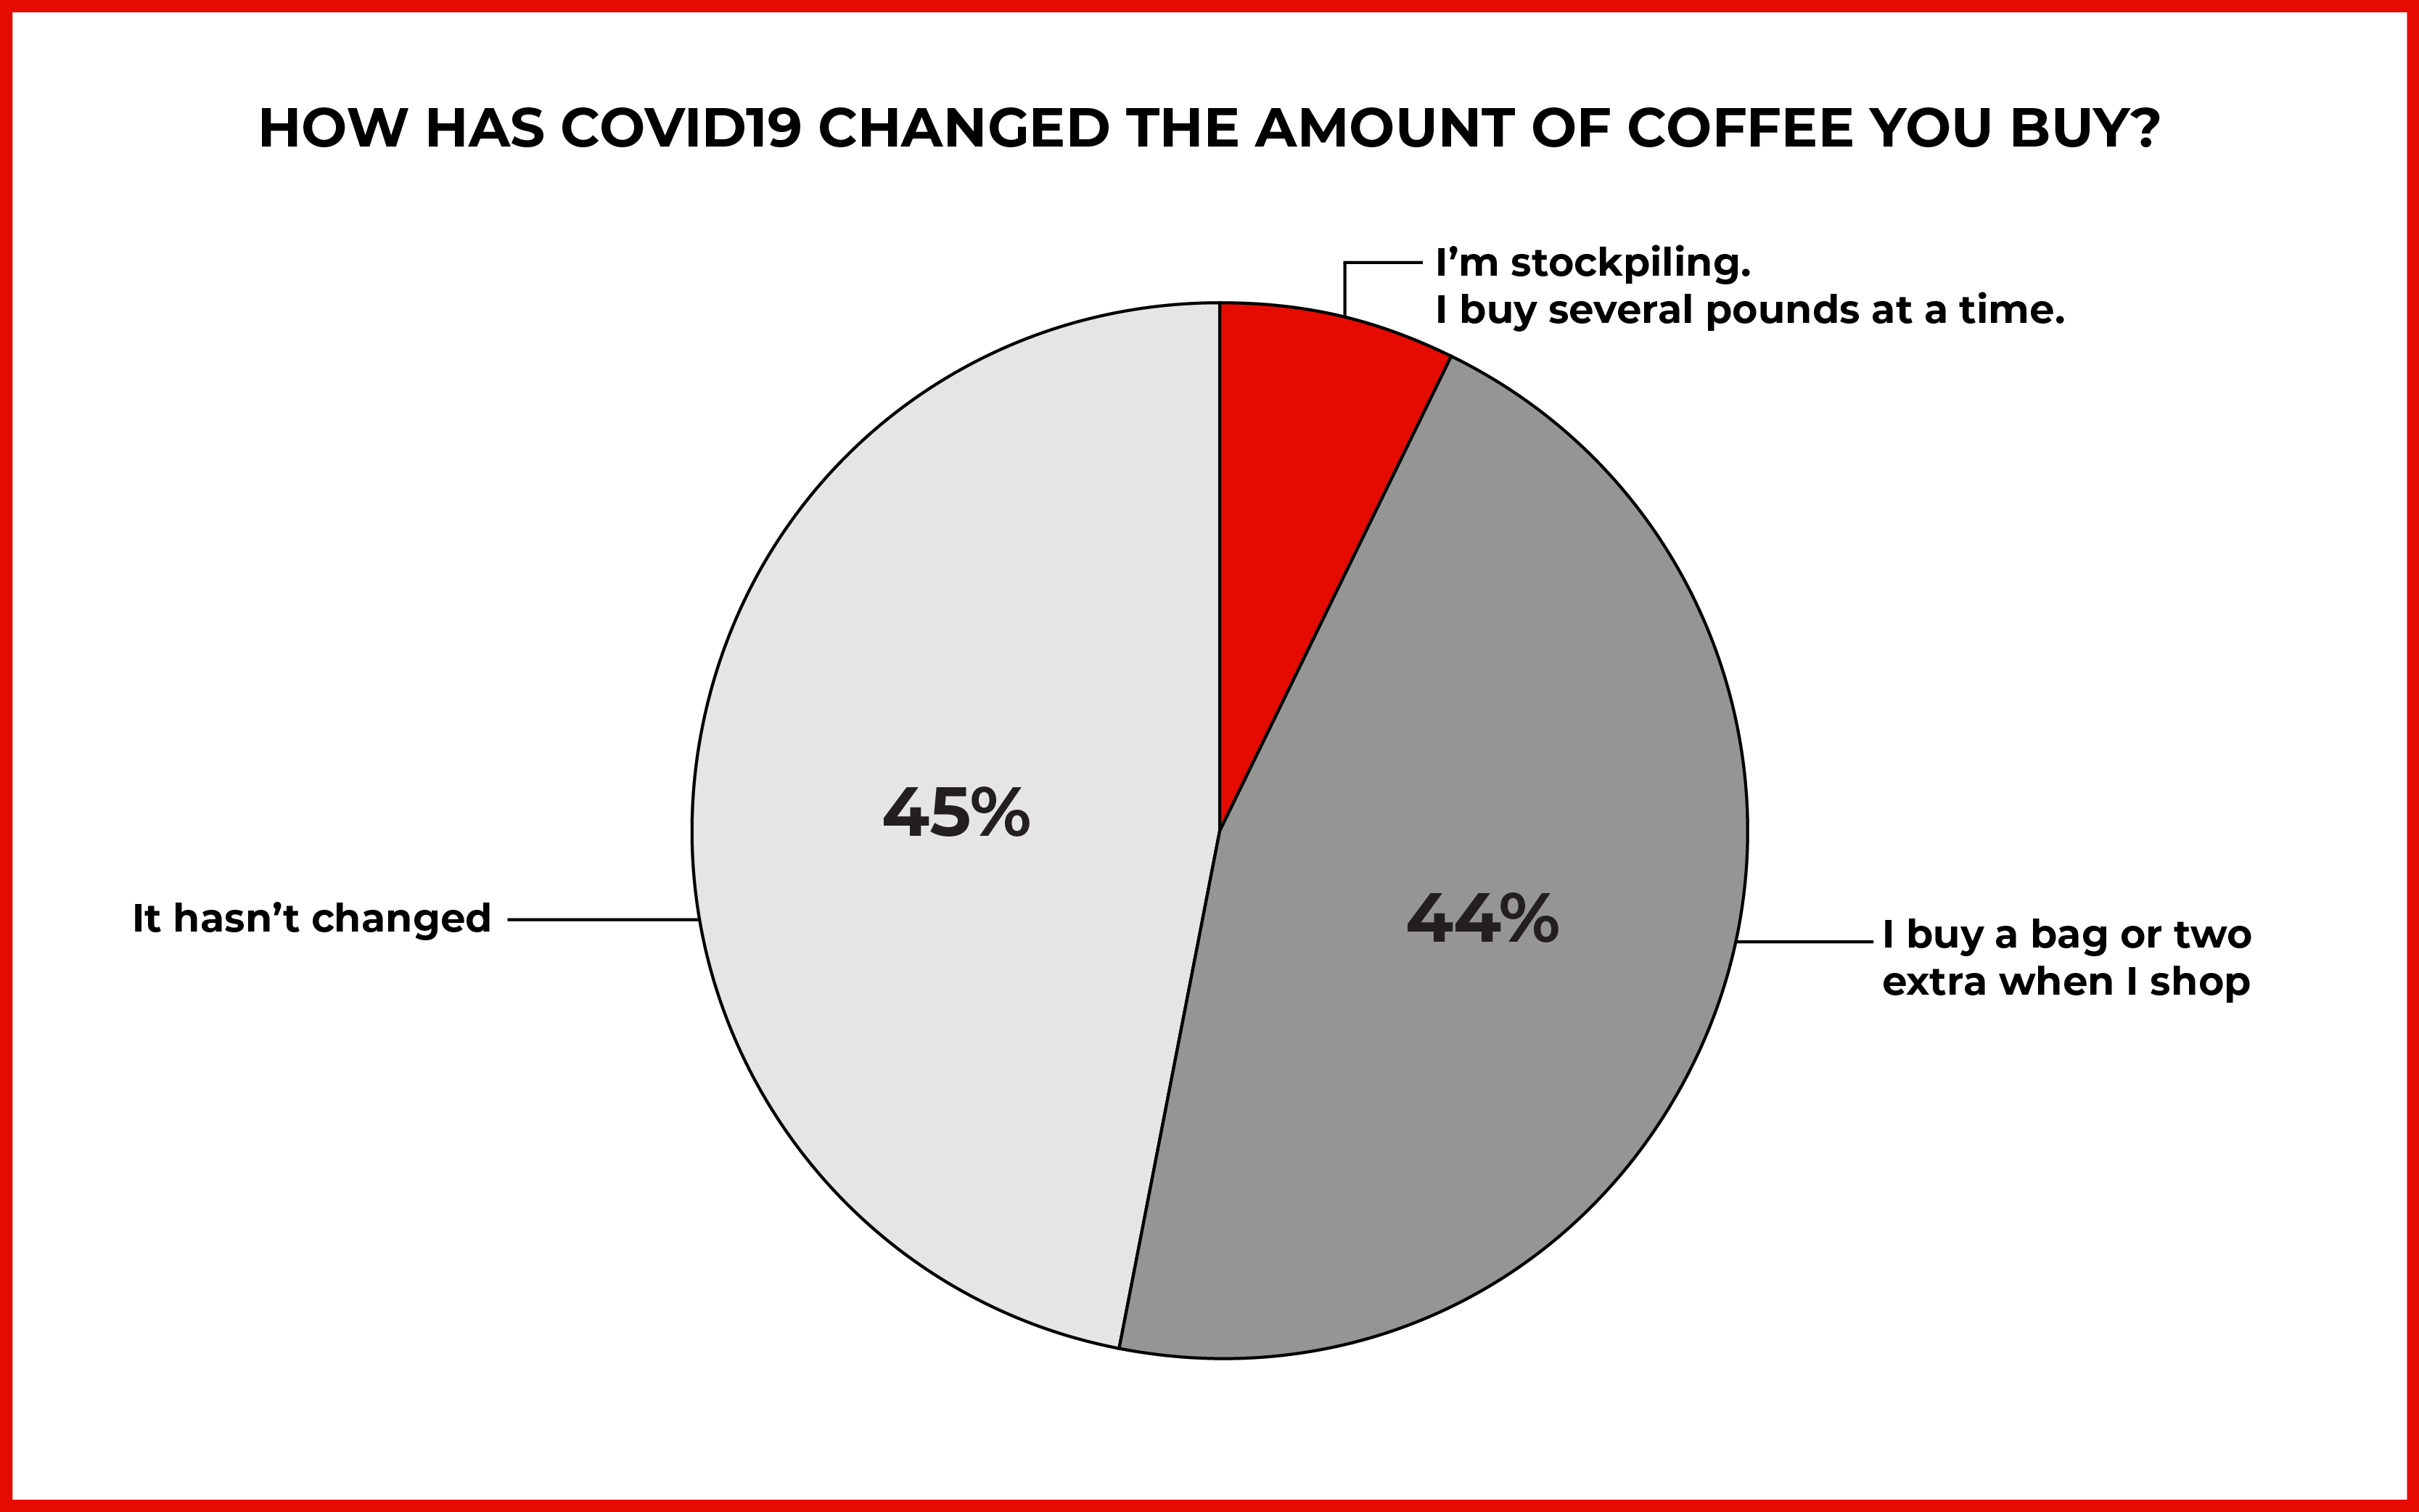 Pie chart of the amount of coffee people have been buying since the start of COVID19, with 45% saying the amount has not changed and 44% saying they've bought a bag or two extra